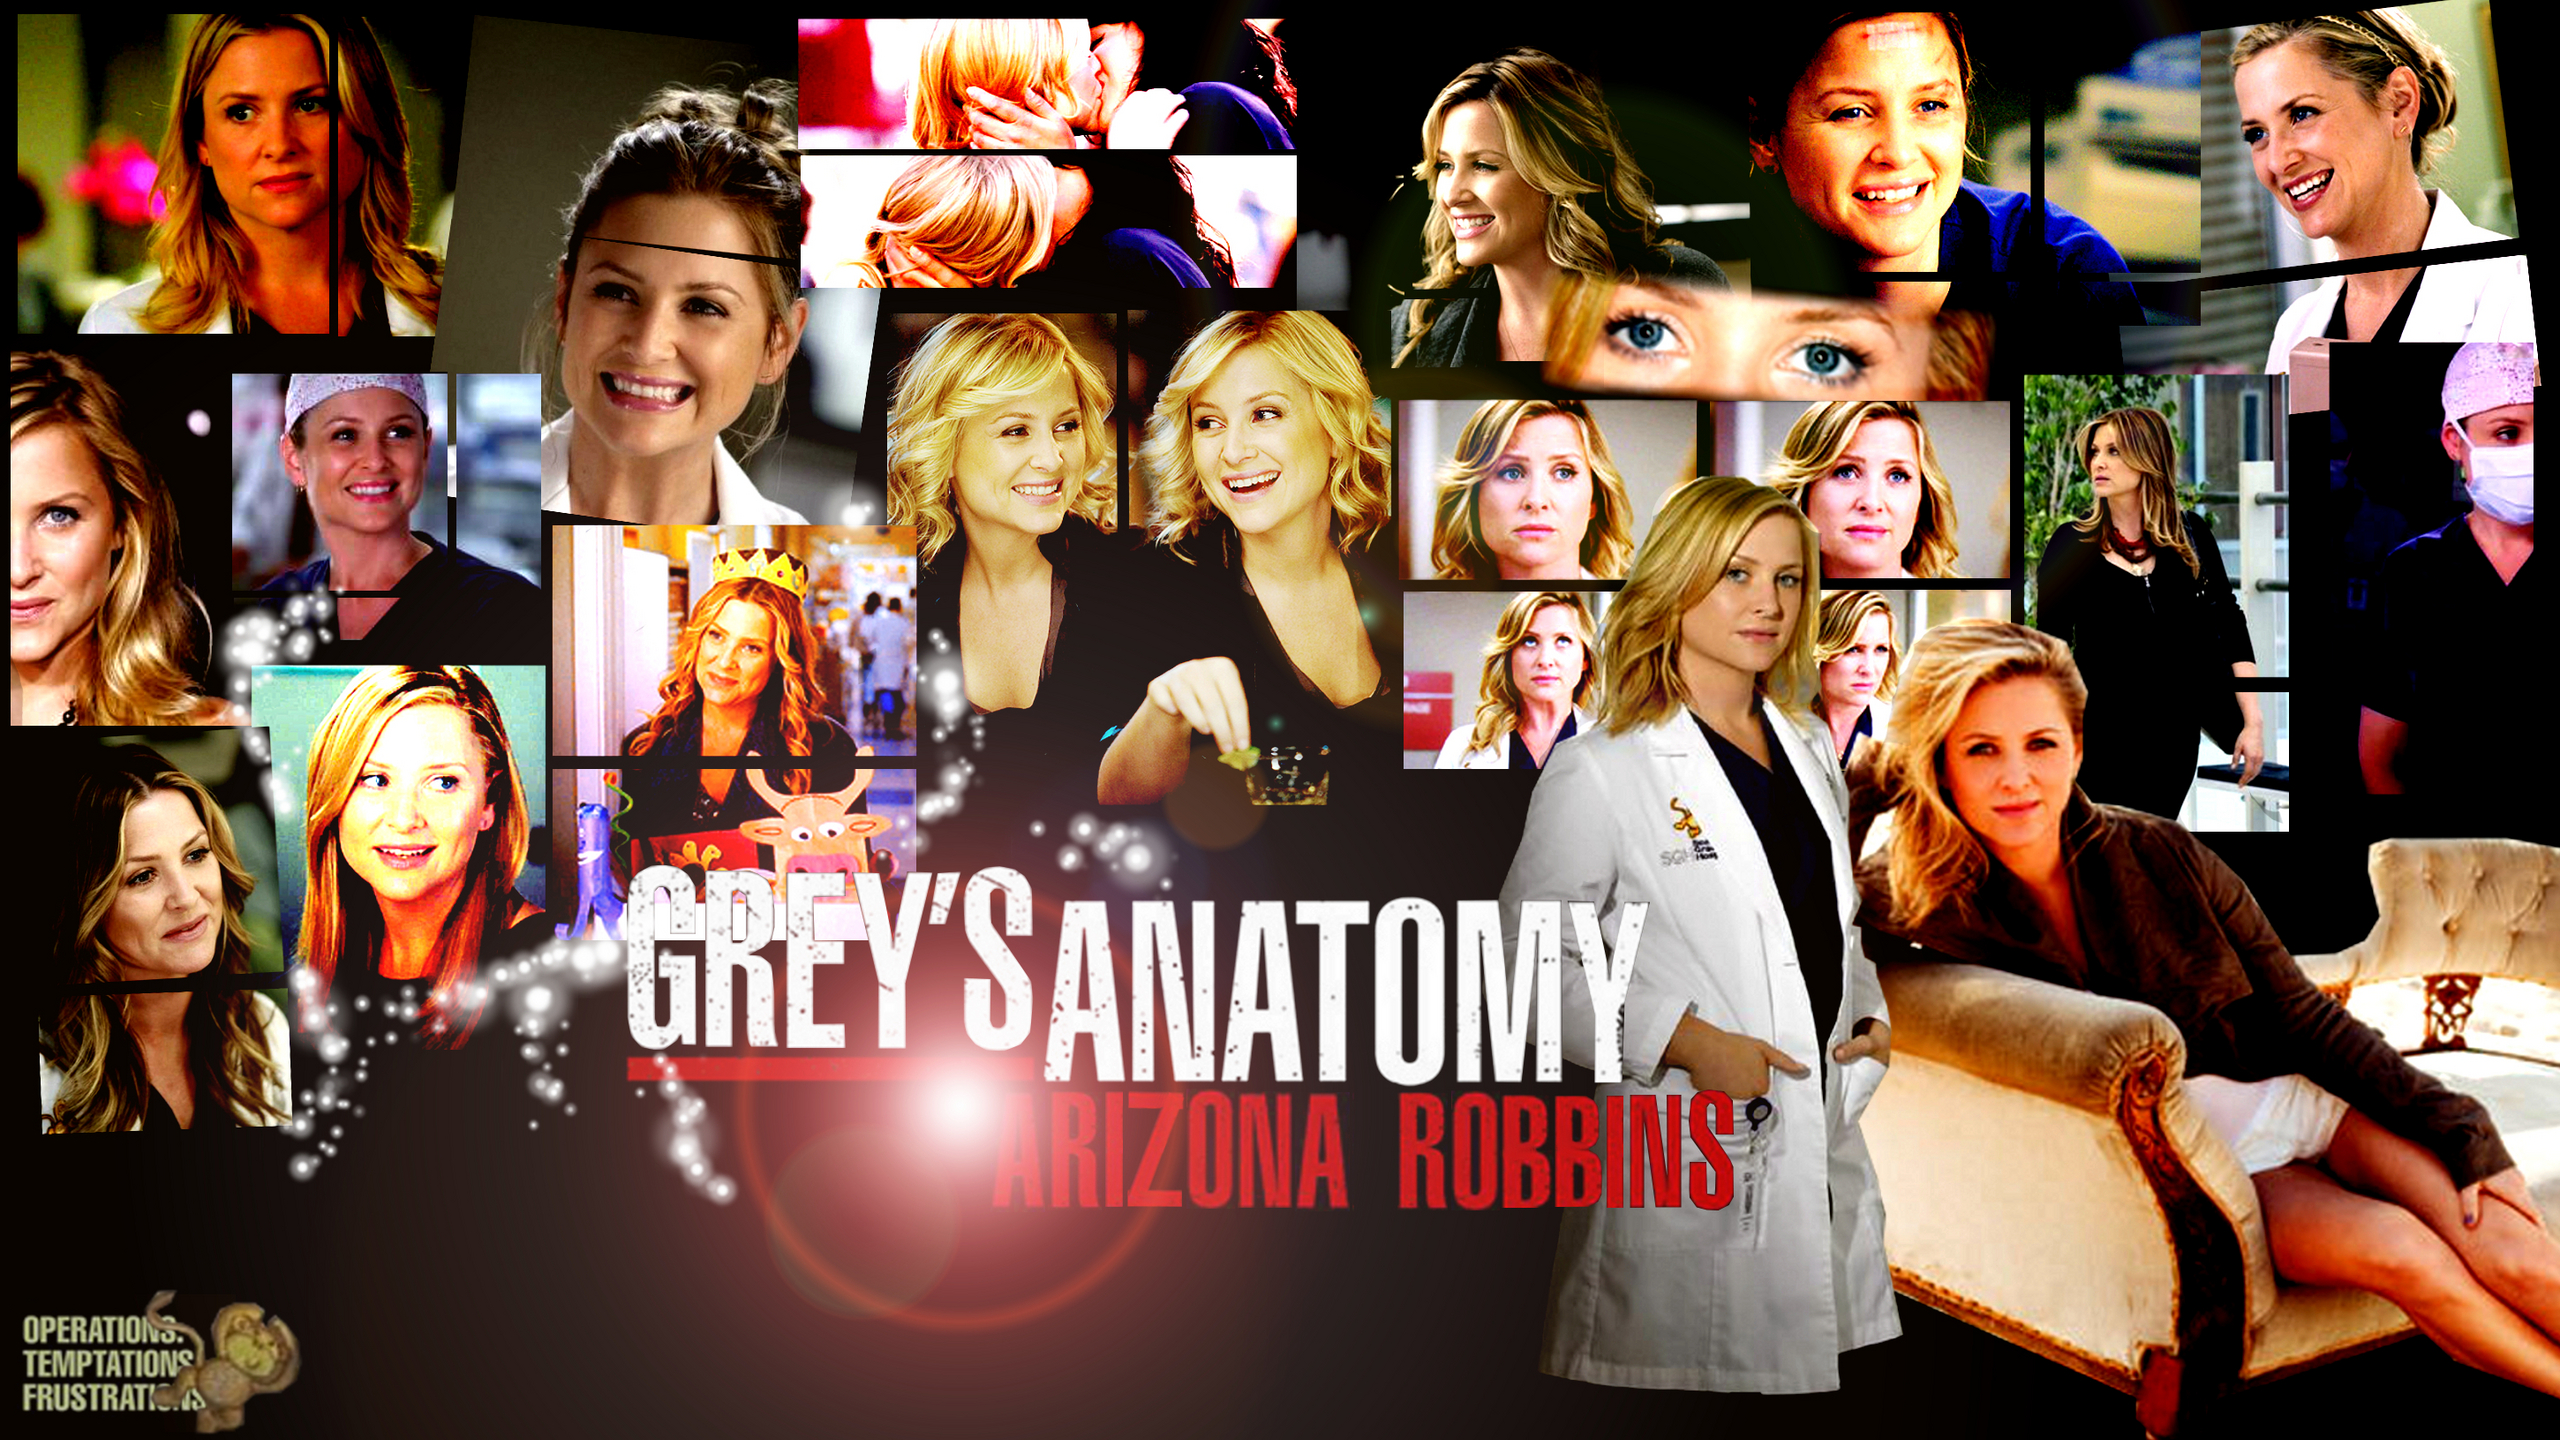 arizona robbins grey 39 s anatomy fan art 29677217 fanpop